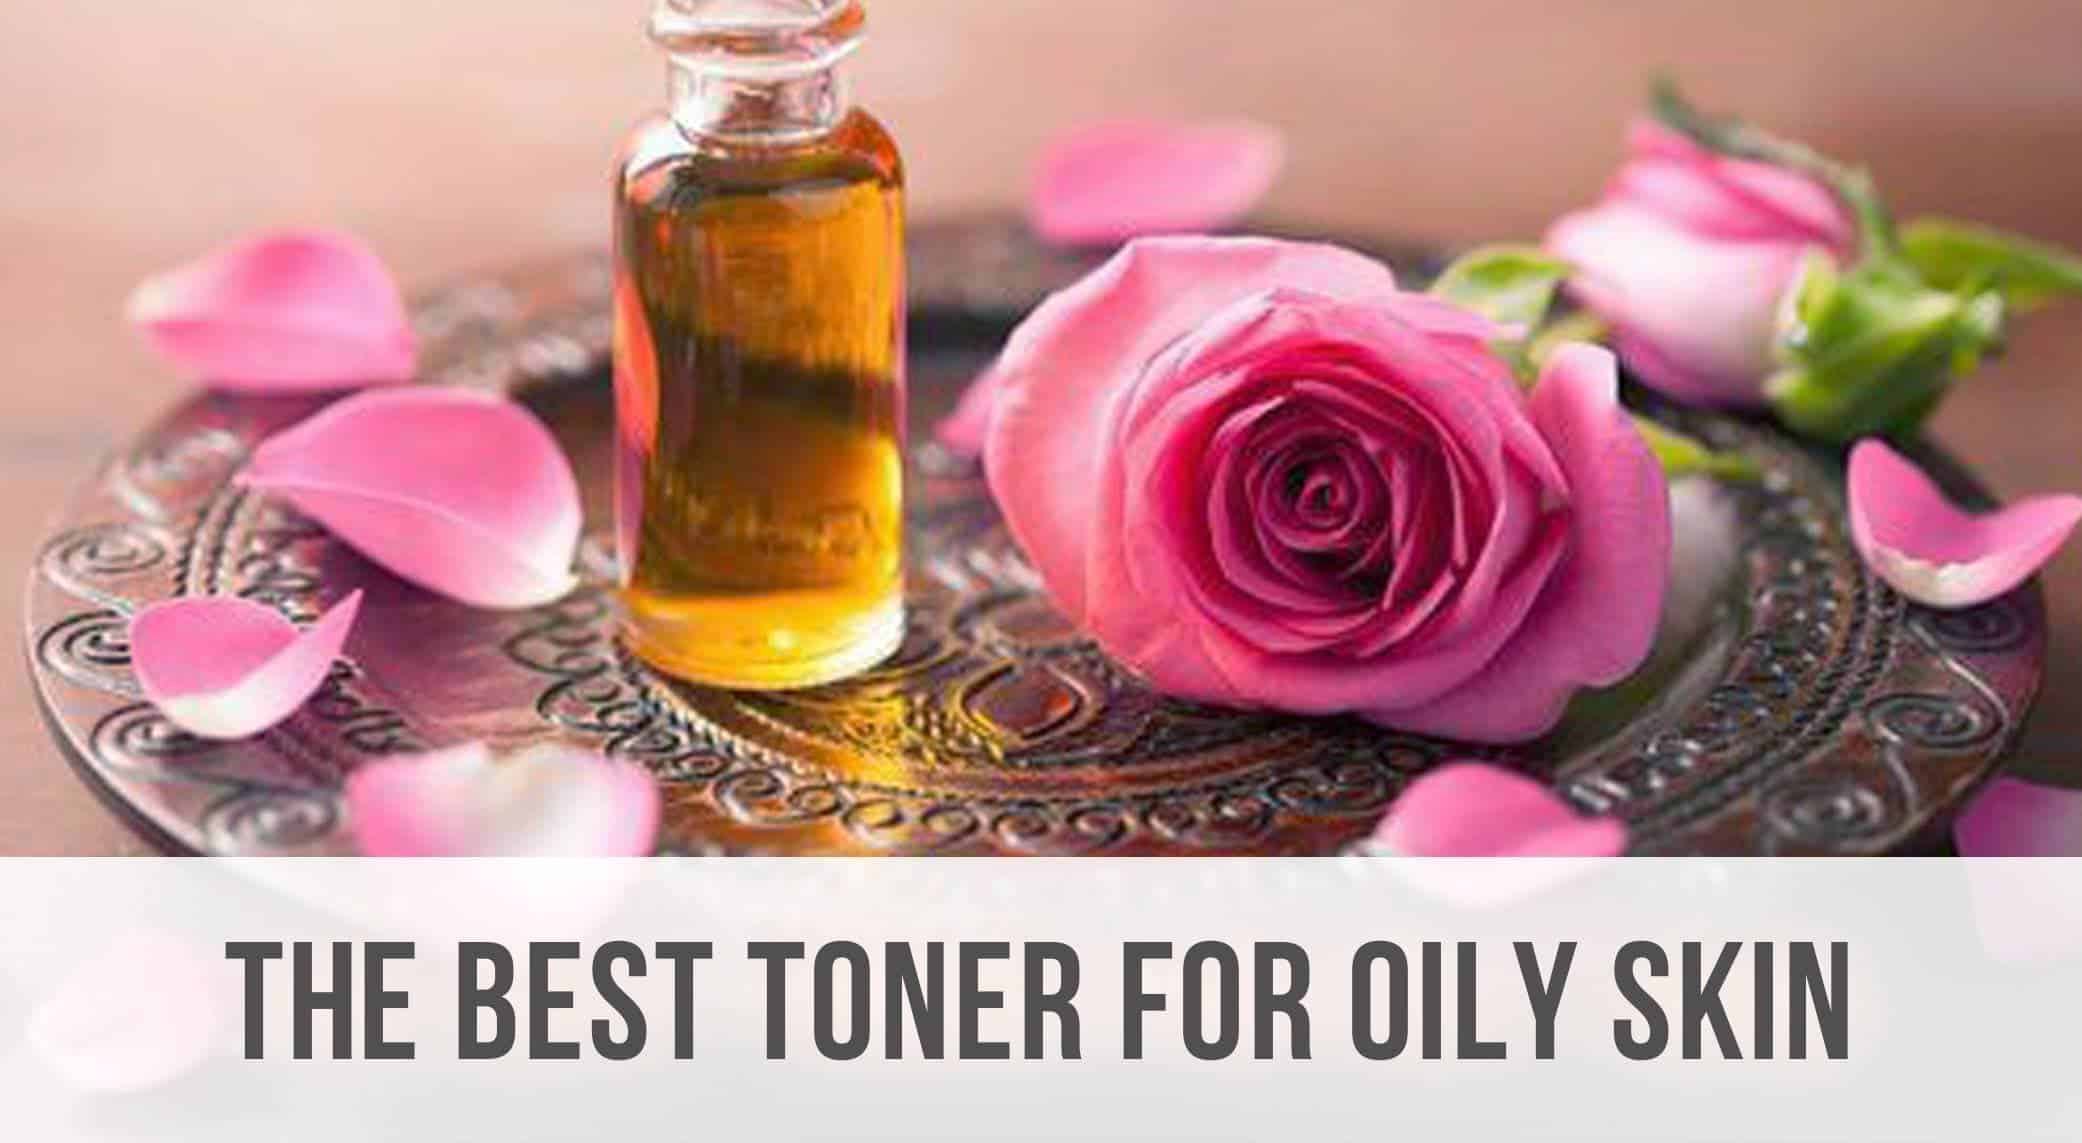 The Best Toner for Oily Skin – 2021 Reviews and Top Picks